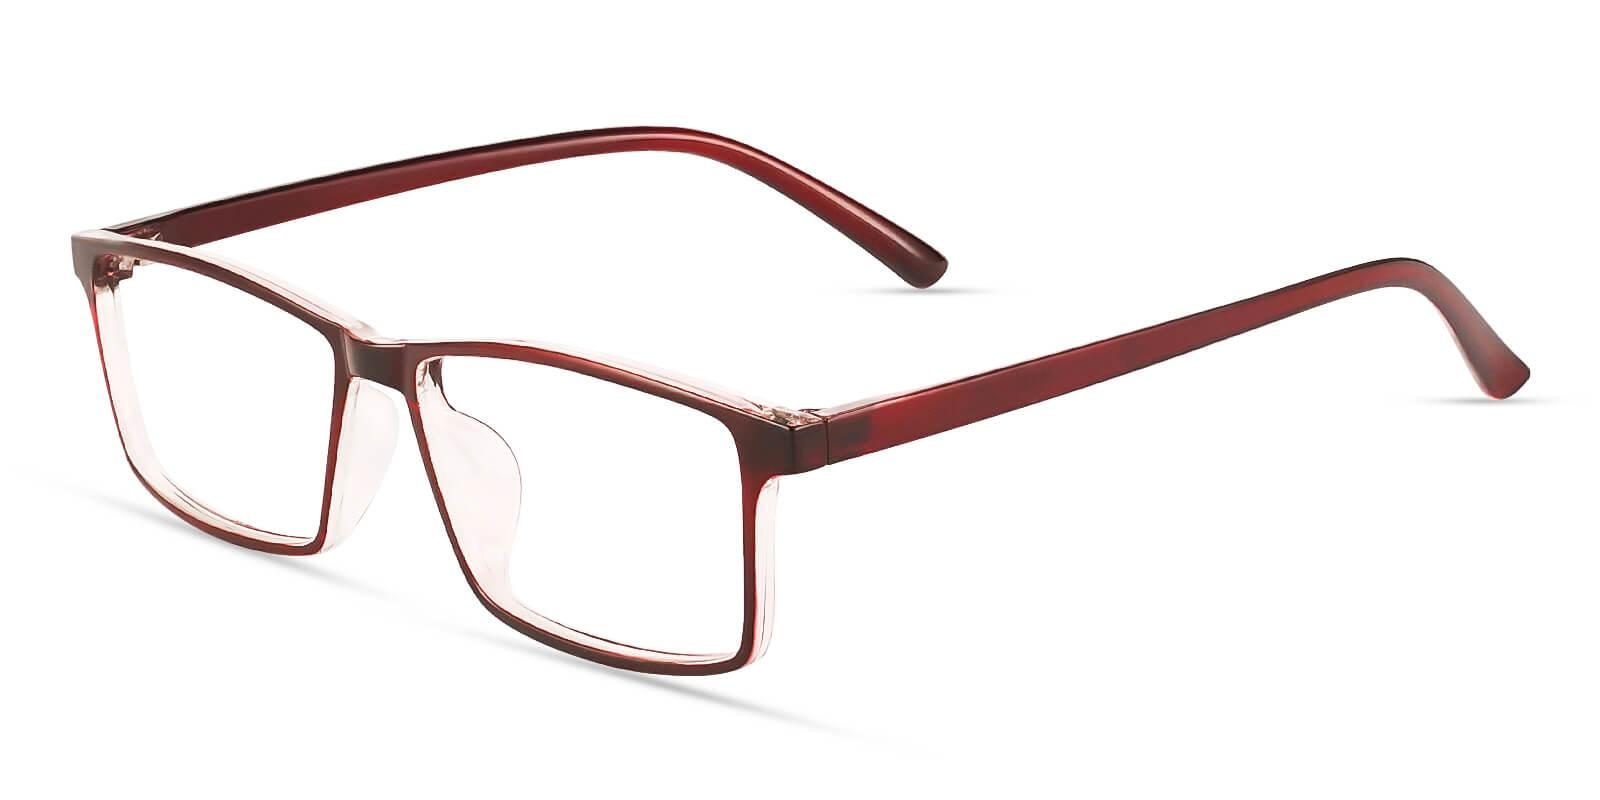 Eliana Red TR Lightweight , UniversalBridgeFit , Eyeglasses Frames from ABBE Glasses